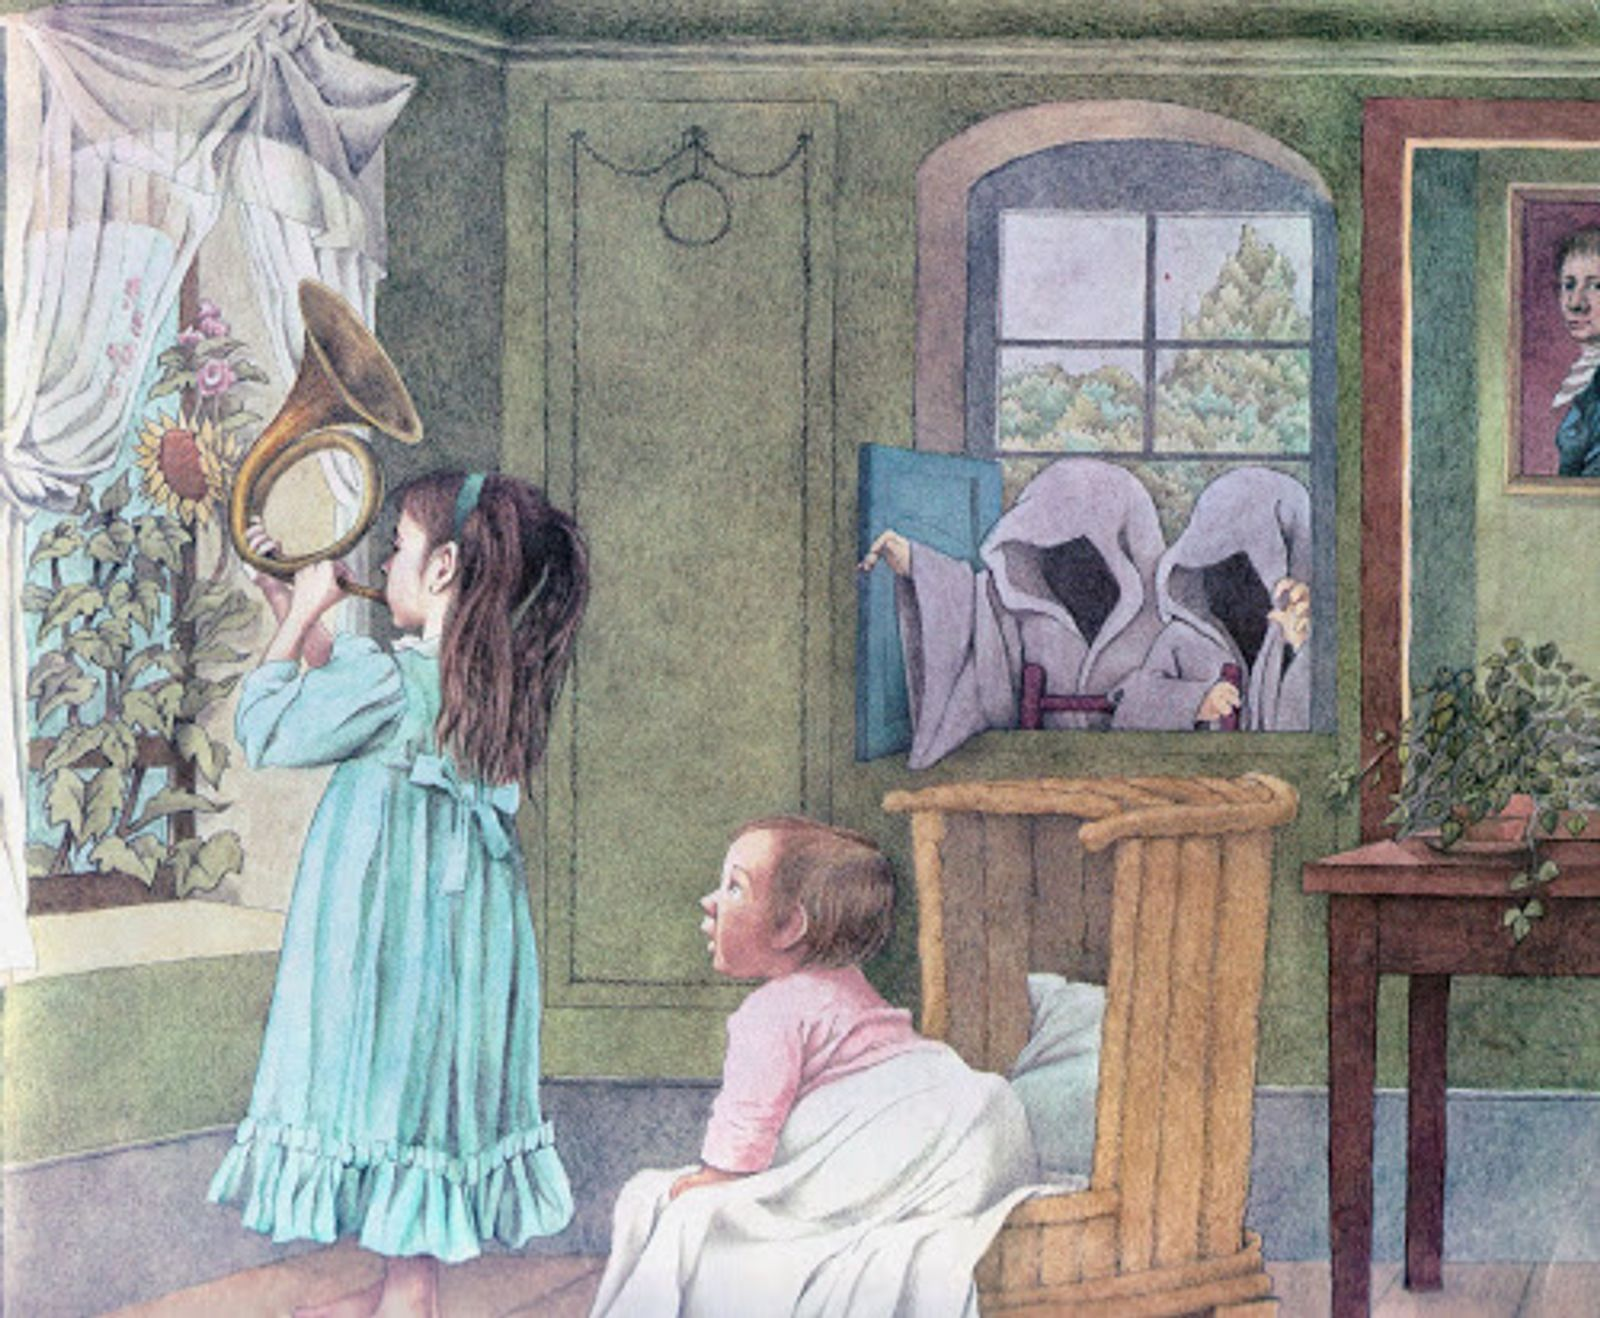 From Outside, Over There, by Maurice Sendak